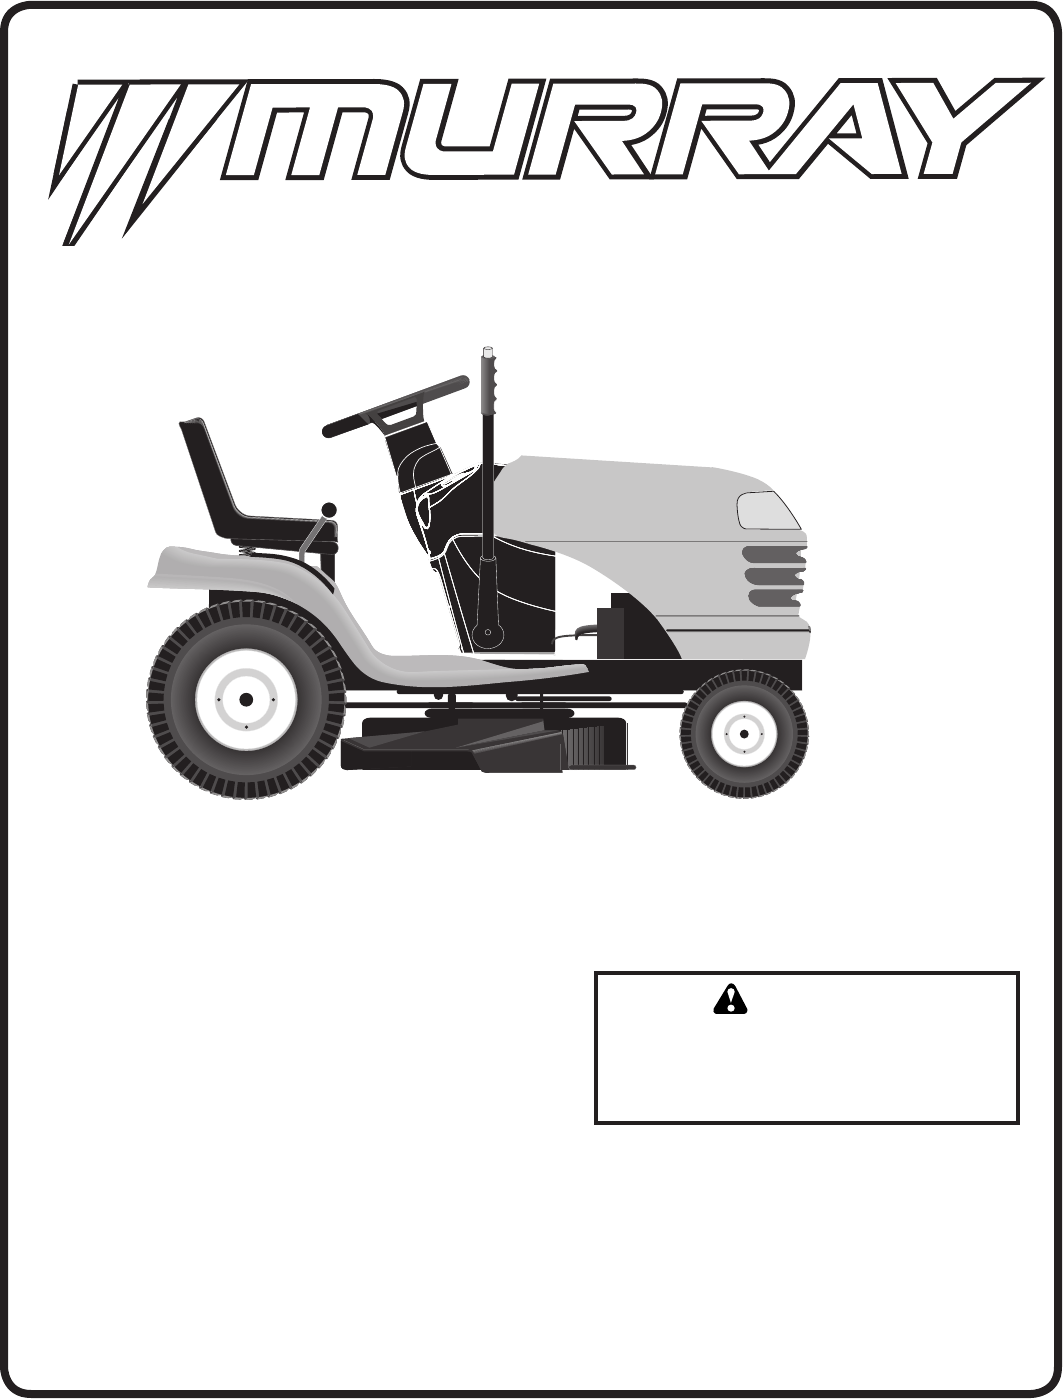 Murray lawn mower 96012007200 user guide manualsonline sciox Image collections